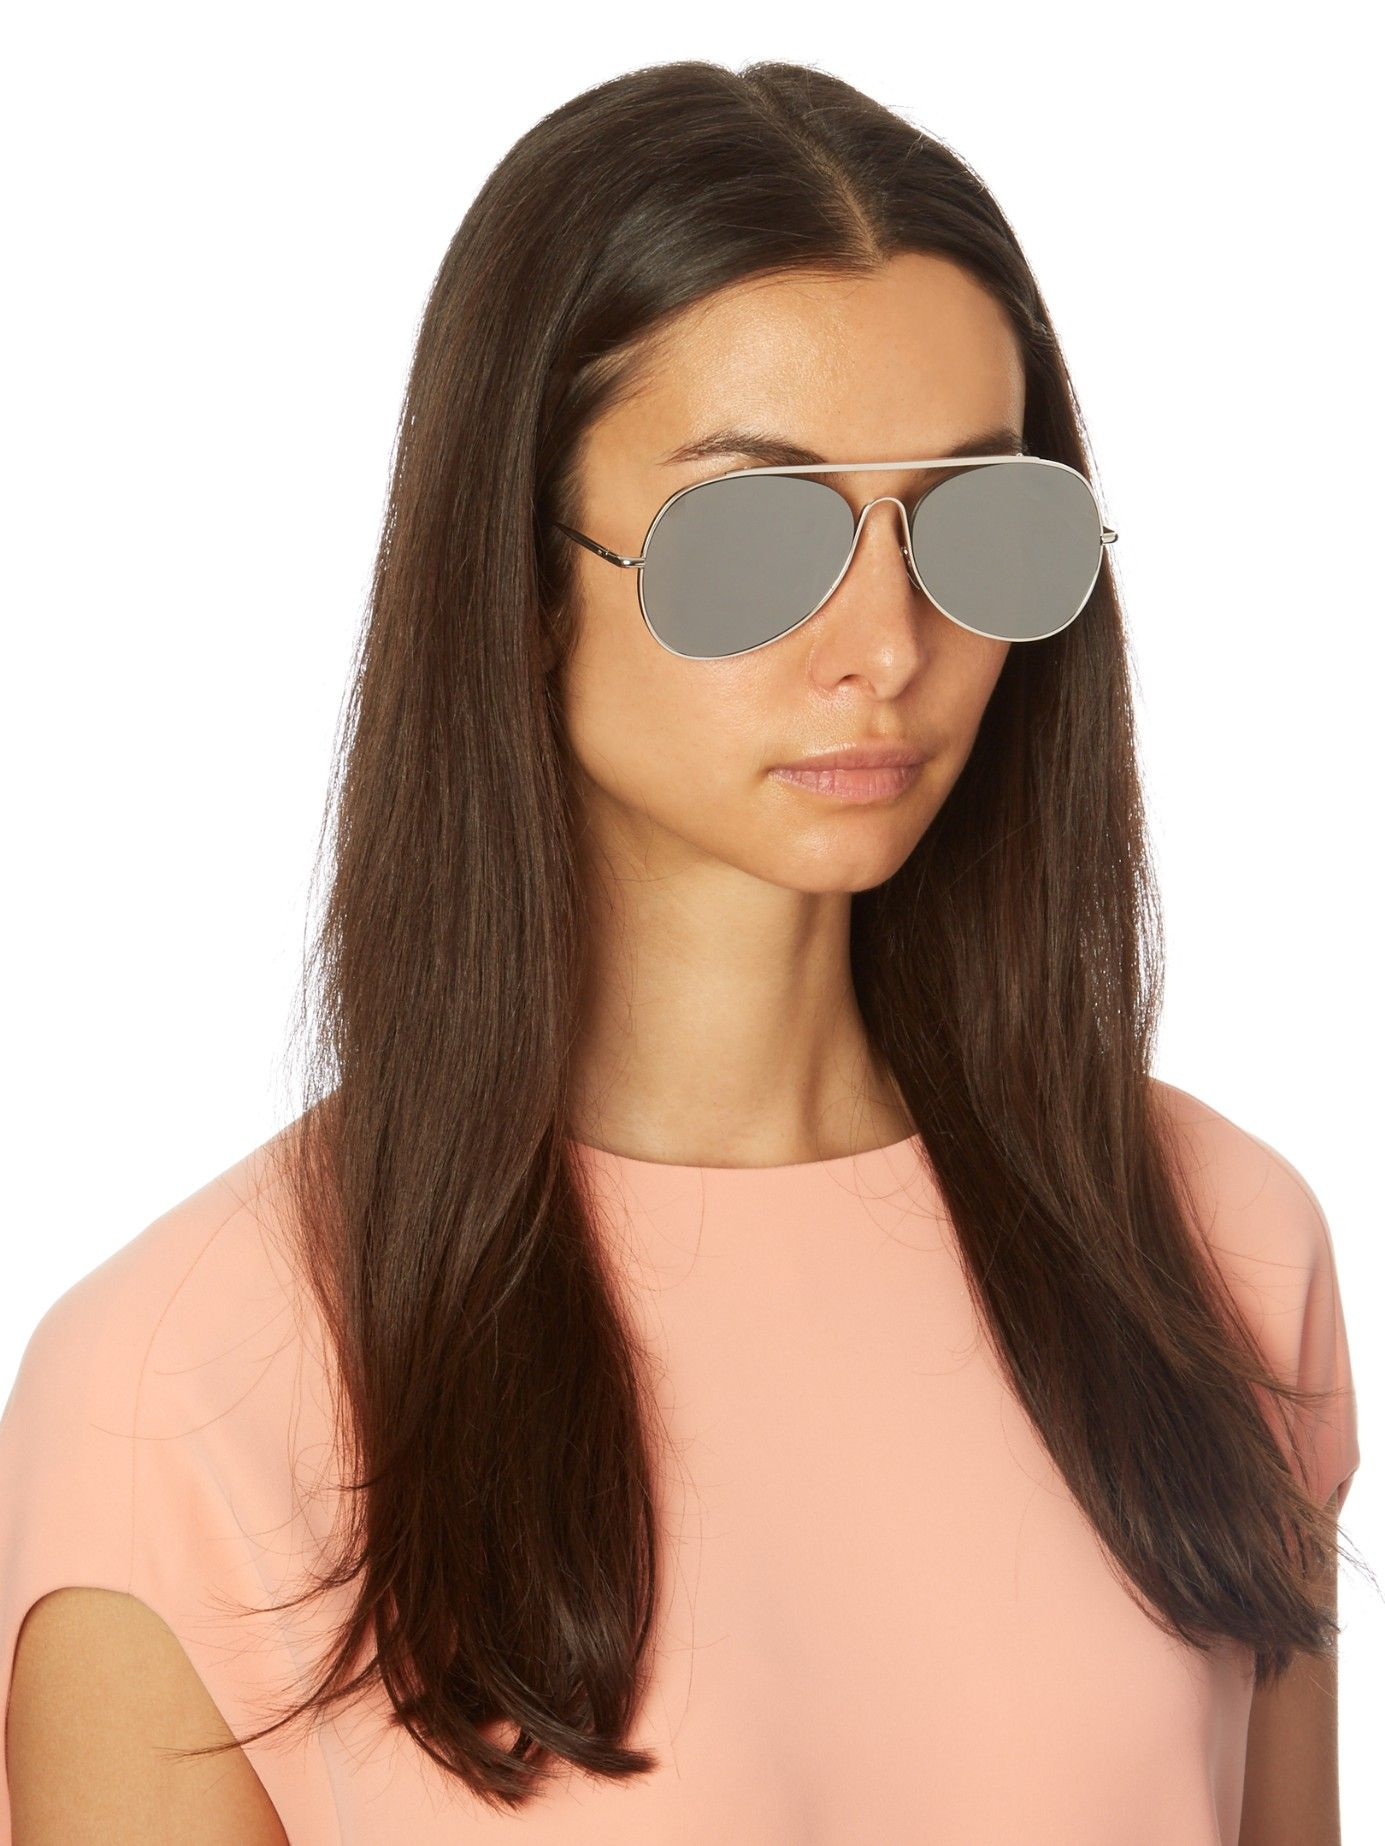 Spitfire Large sunglasses Acne Studios